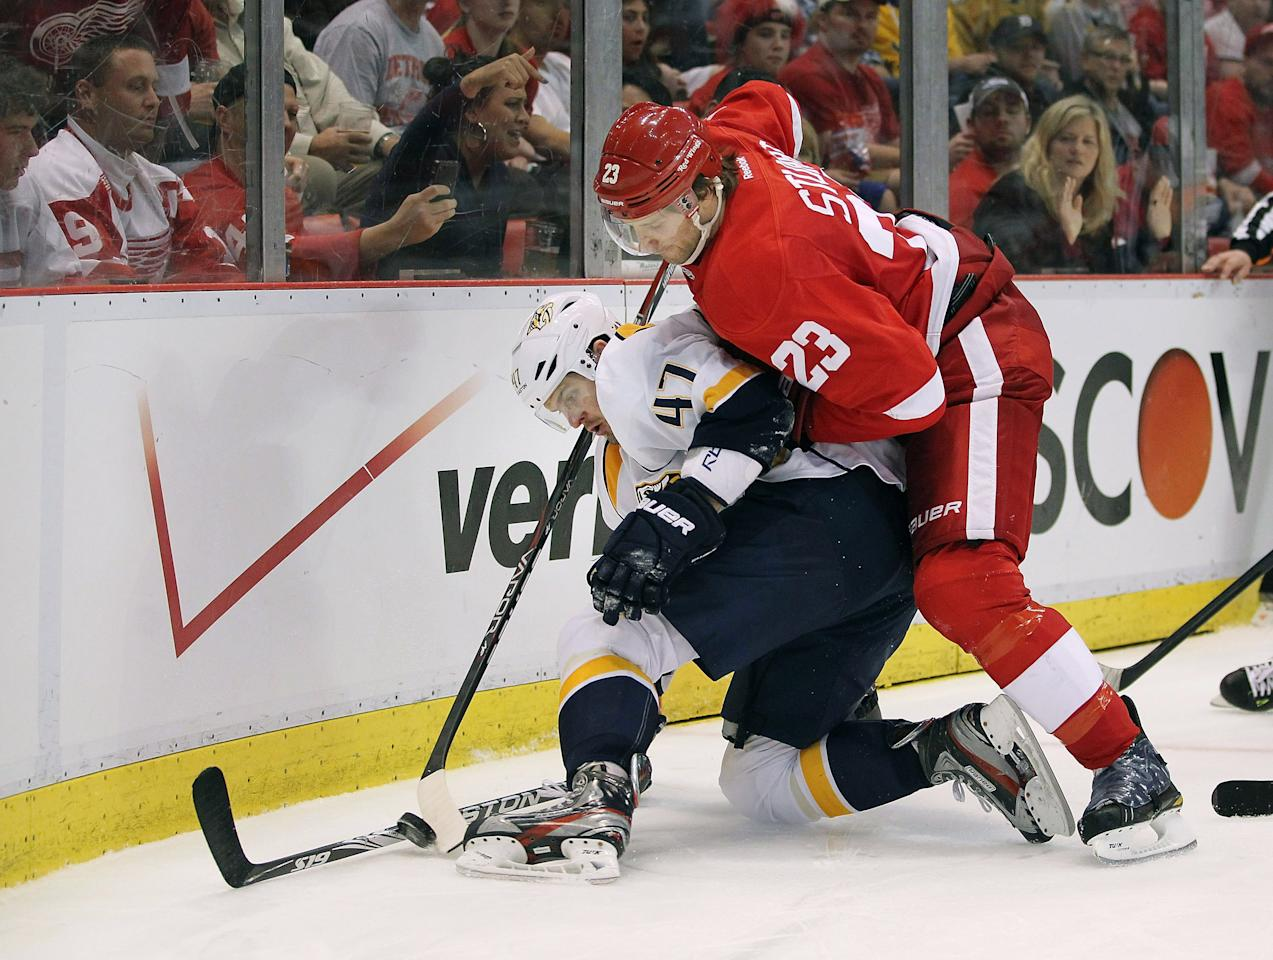 DETROIT, MI - APRIL 15: Alexander Radulov #47 of the Nashville Predators tries to control the puck in front of Brad Stuart #23 of the Detroit Red Wings during Game Three of the Western Conference Quarterfinals during the 2012 NHL Stanley Cup Playoffs at Joe Louis Arena on April 15, 2012 in Detroit, Michigan. (Photo by Gregory Shamus/Getty Images)